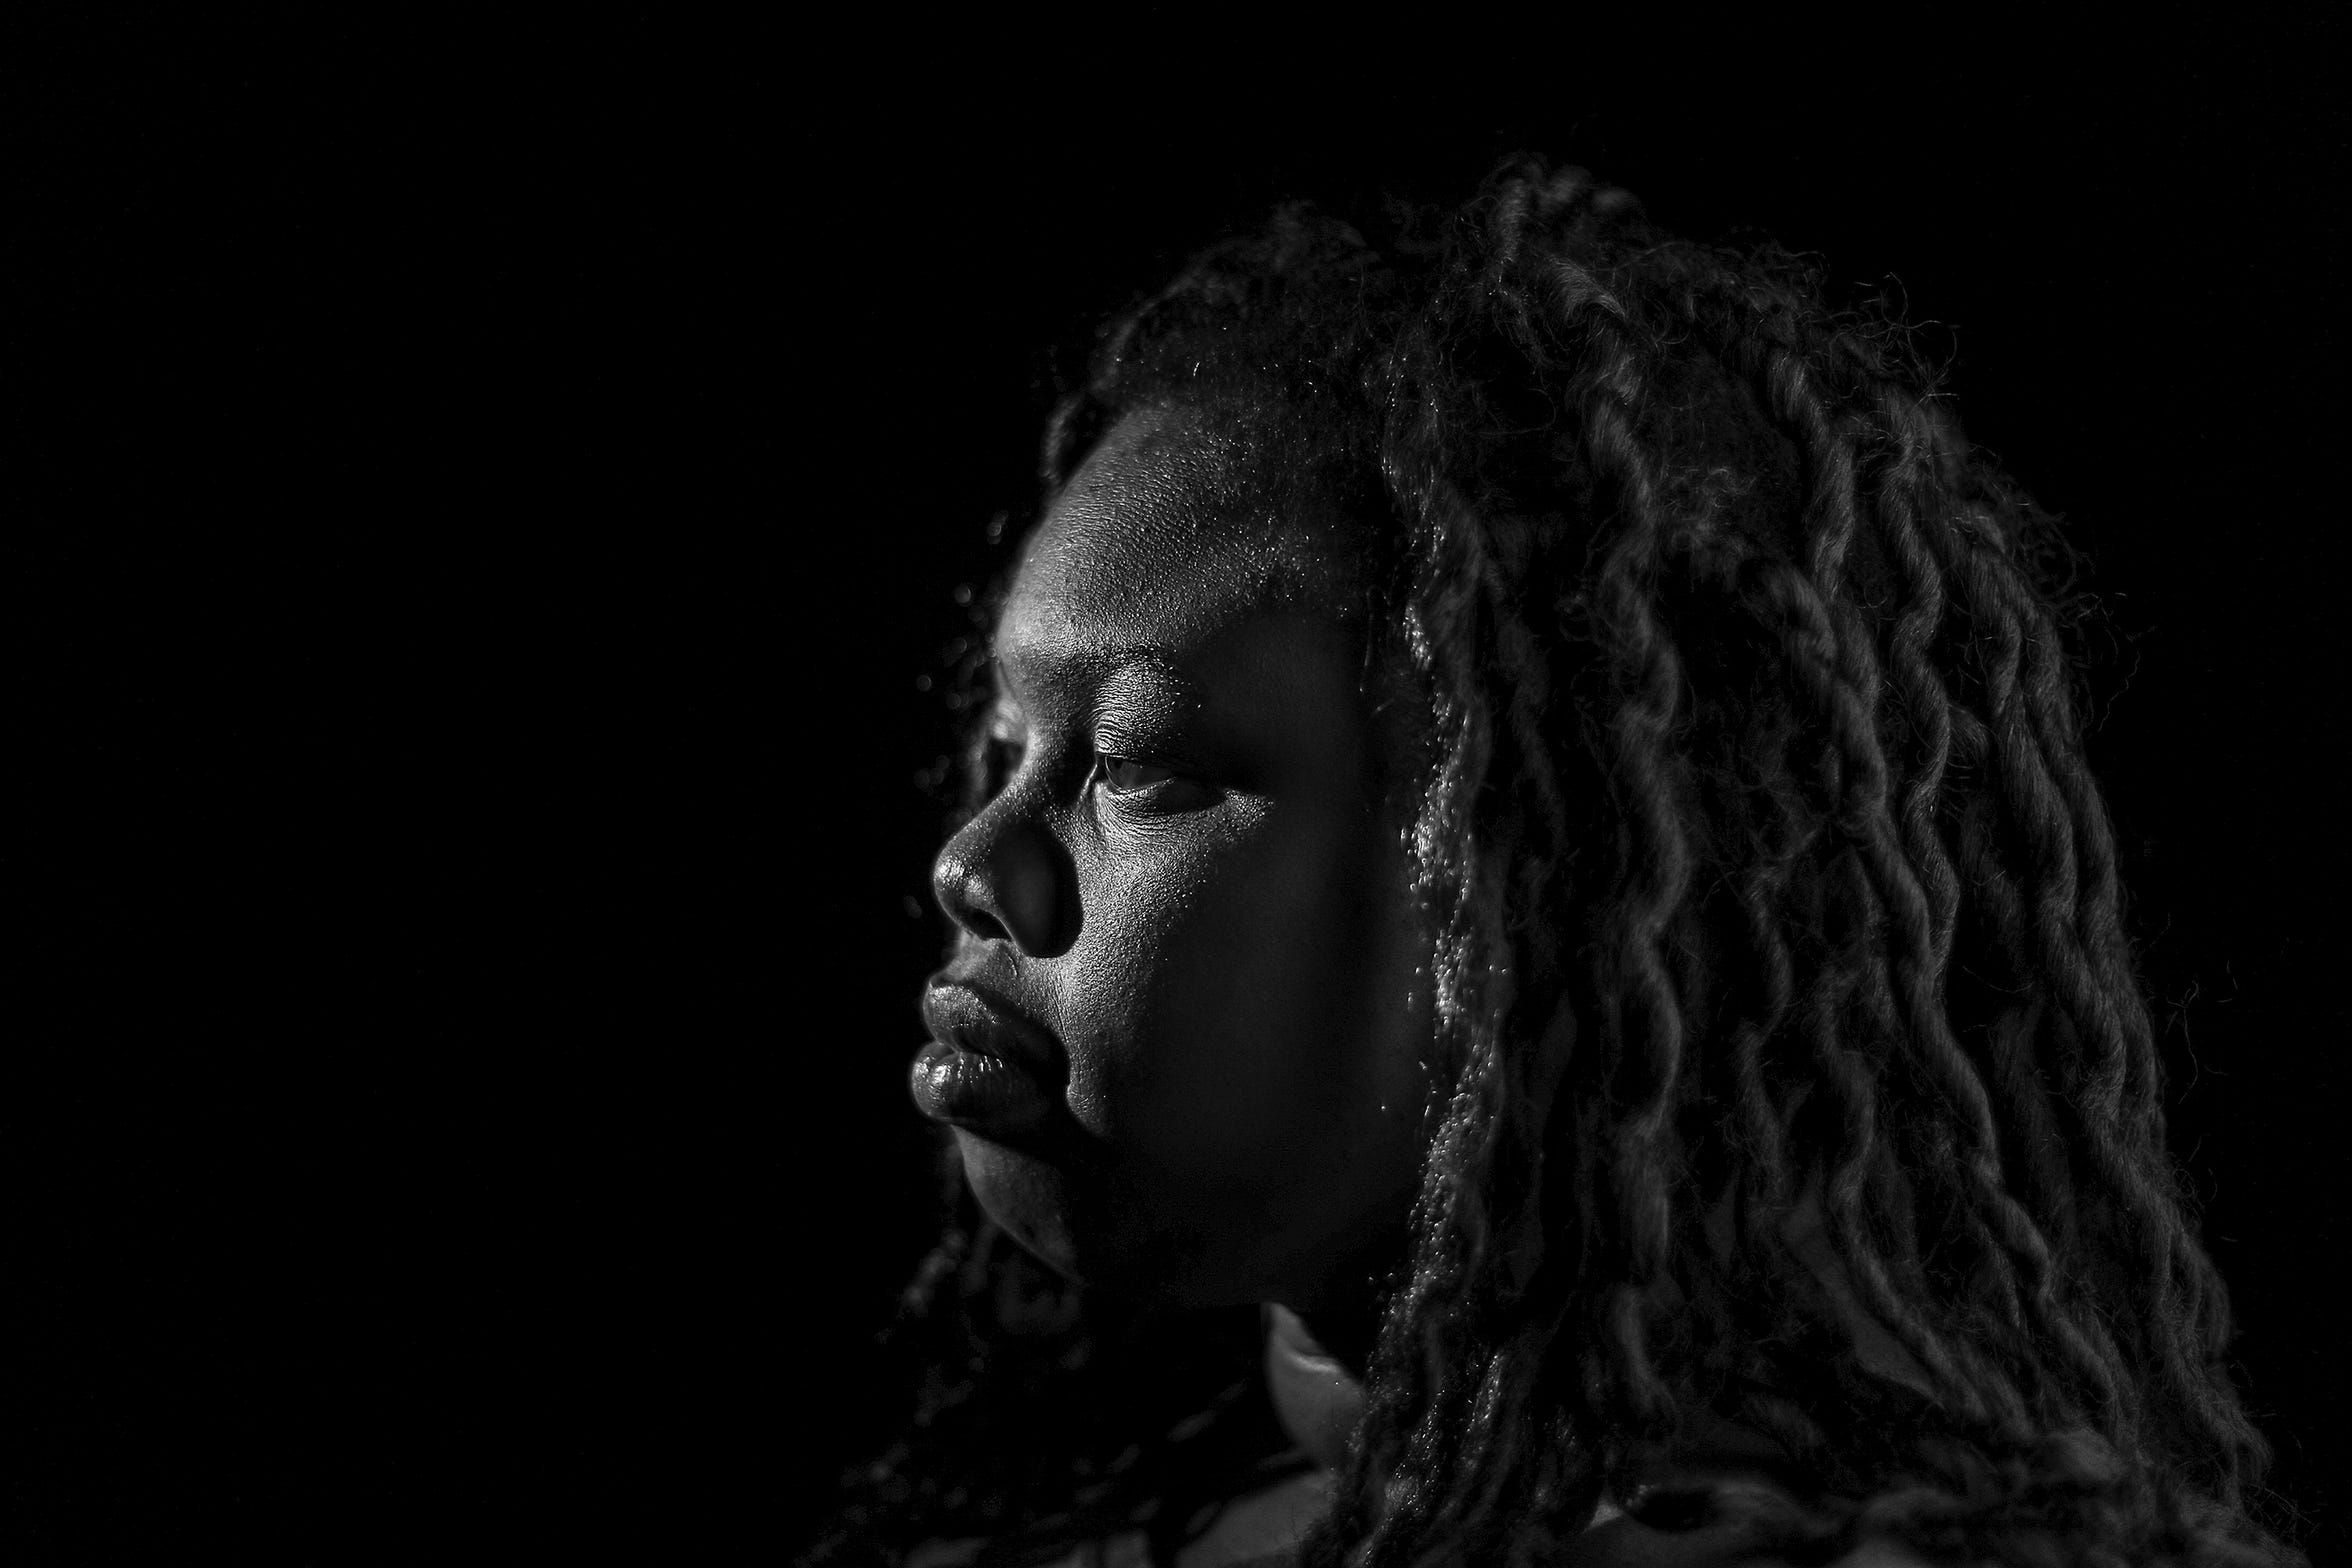 KiKi Shelton, 24, is one of Louisville's disconnected youth.  She's tried for years to find steady employment but has found the path to be difficult.November 25, 2019